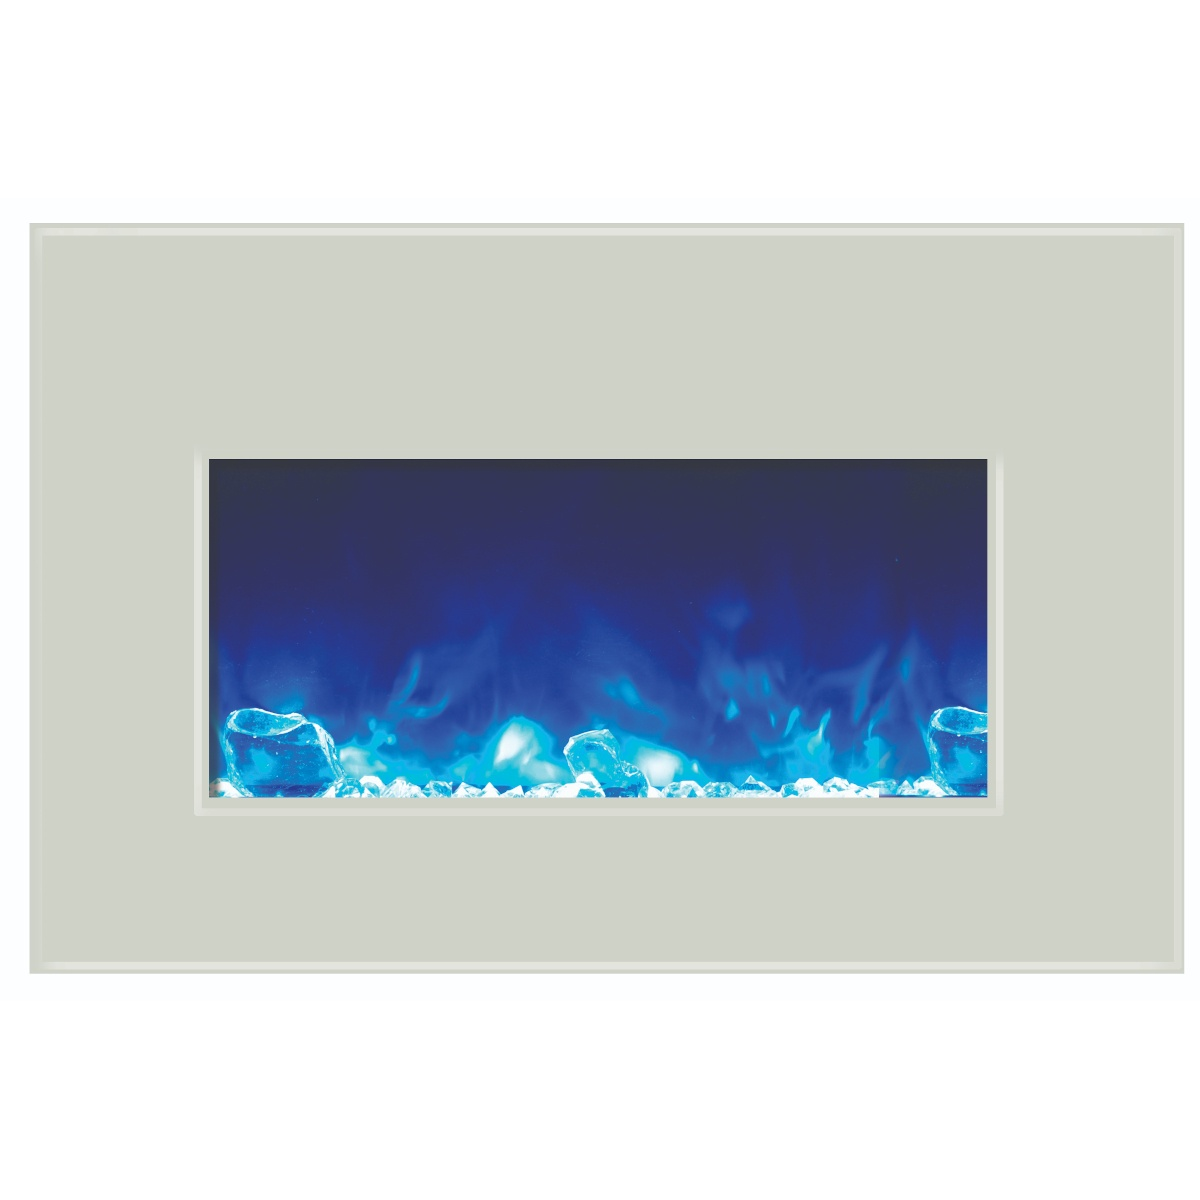 amantii 30 inch contemporary electric fireplace insert white glass surround with embers and blue flames